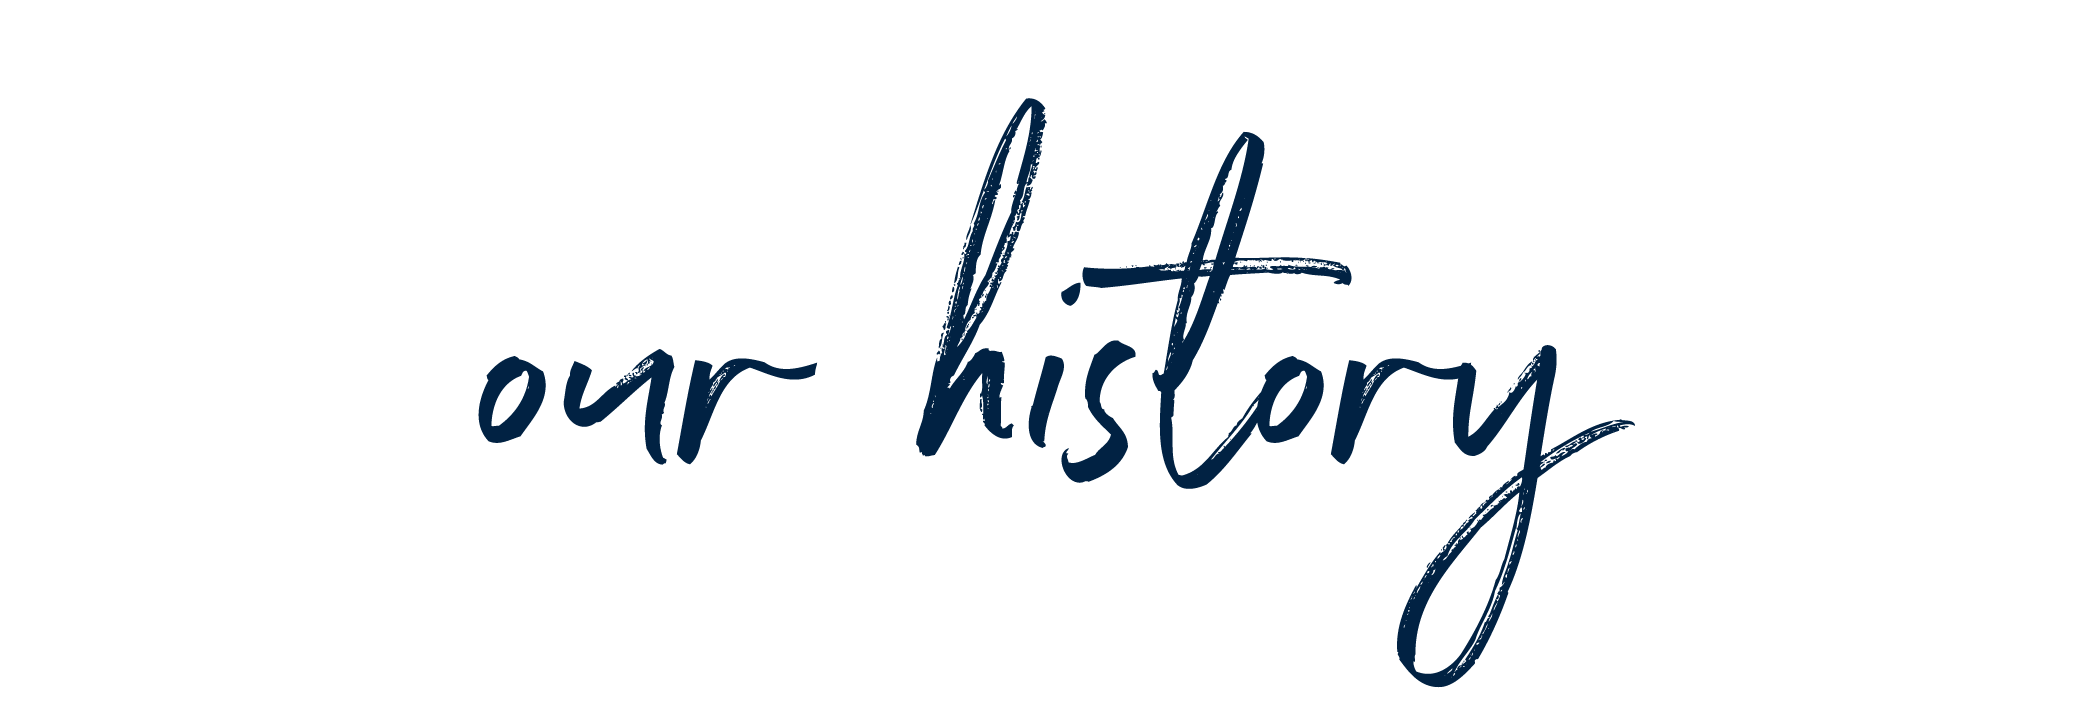 our history-23.png